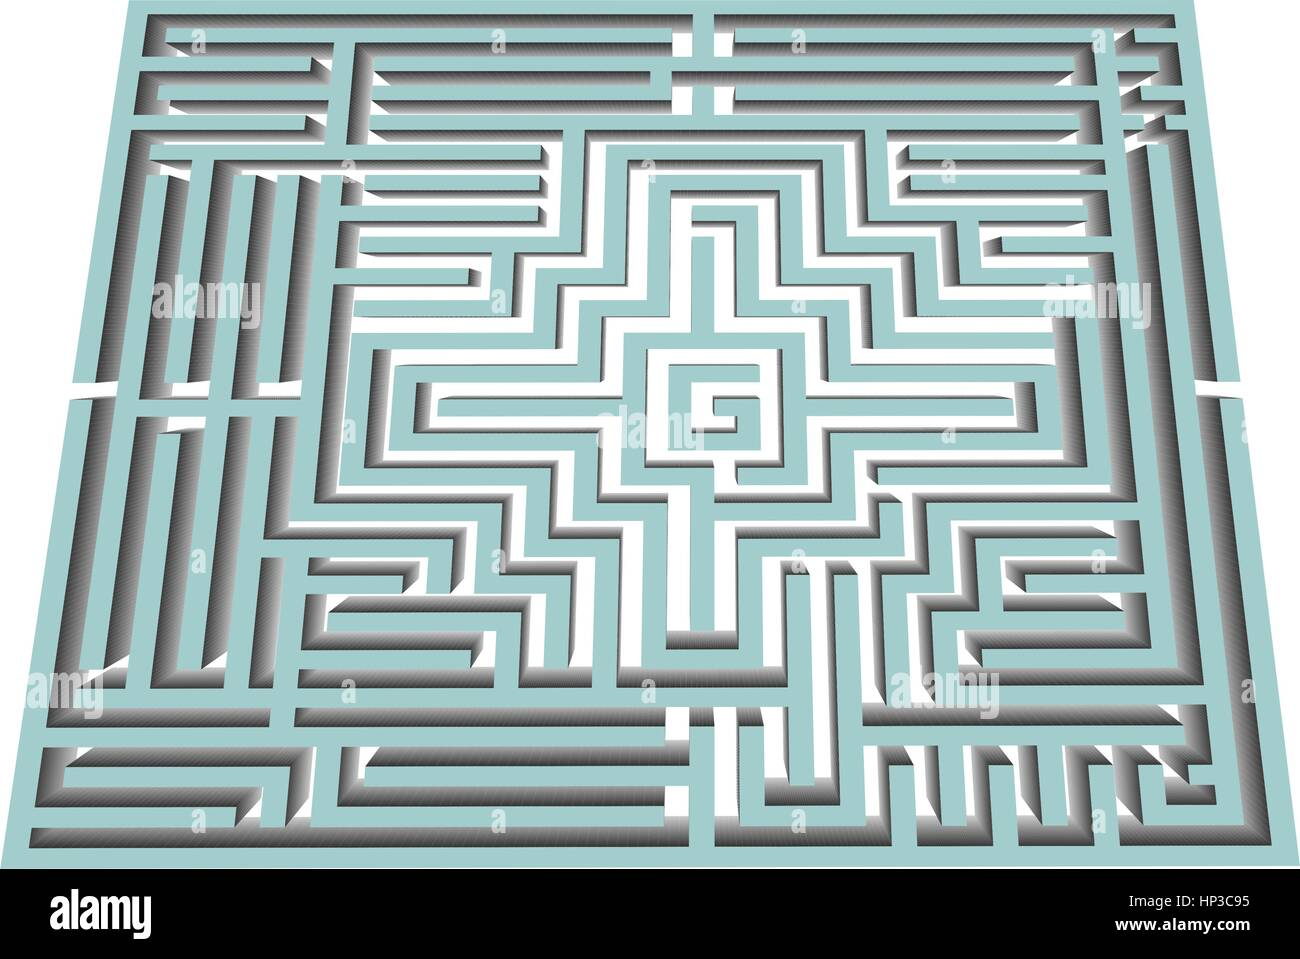 vector black and white Illustration of a maze and labyrinth - Stock Image